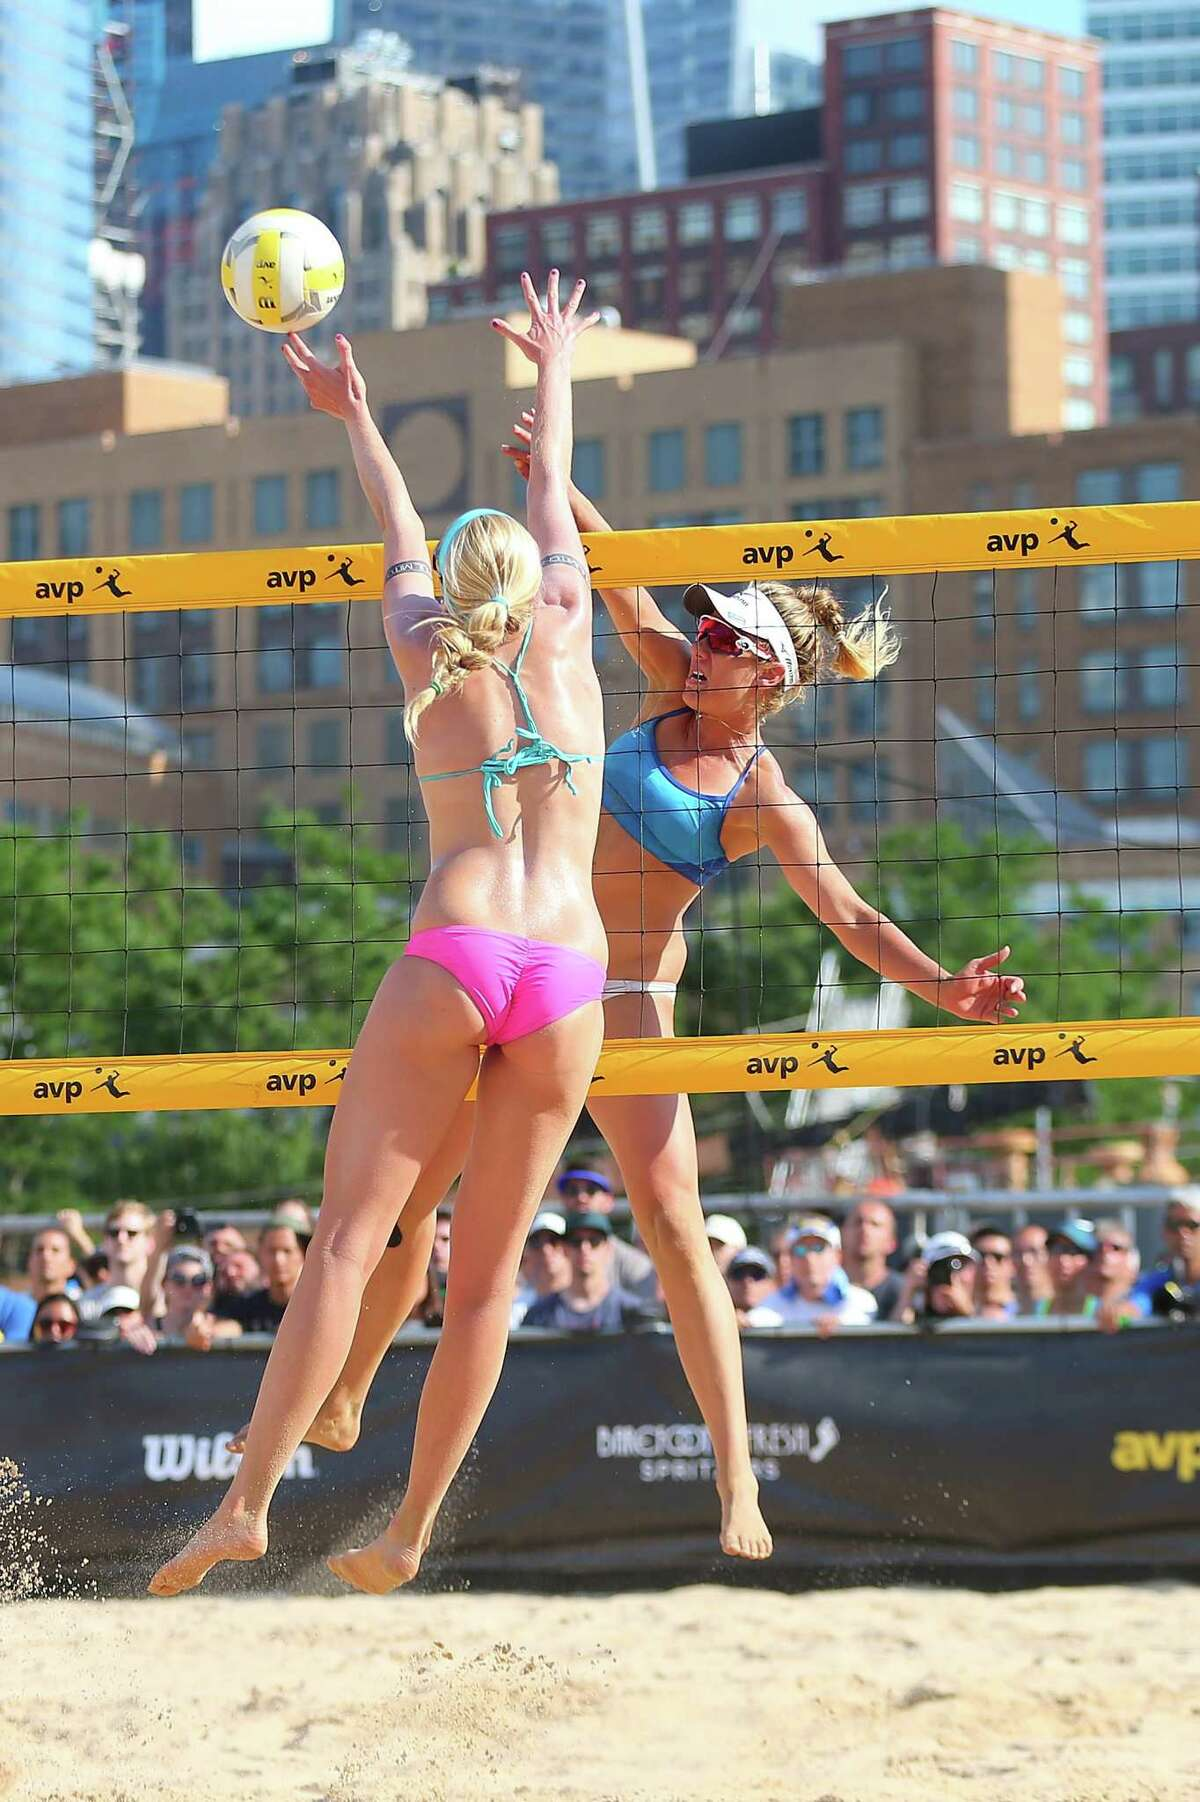 NEW YORK, NY - JUNE 19: April Ross spikes the ball against Summer Ross during the Women's AVP New York Open Championship Match at Hudson River Park on June 19, 2016 in New York City. (Photo by Mike Stobe/Getty Images) ORG XMIT: 624863025